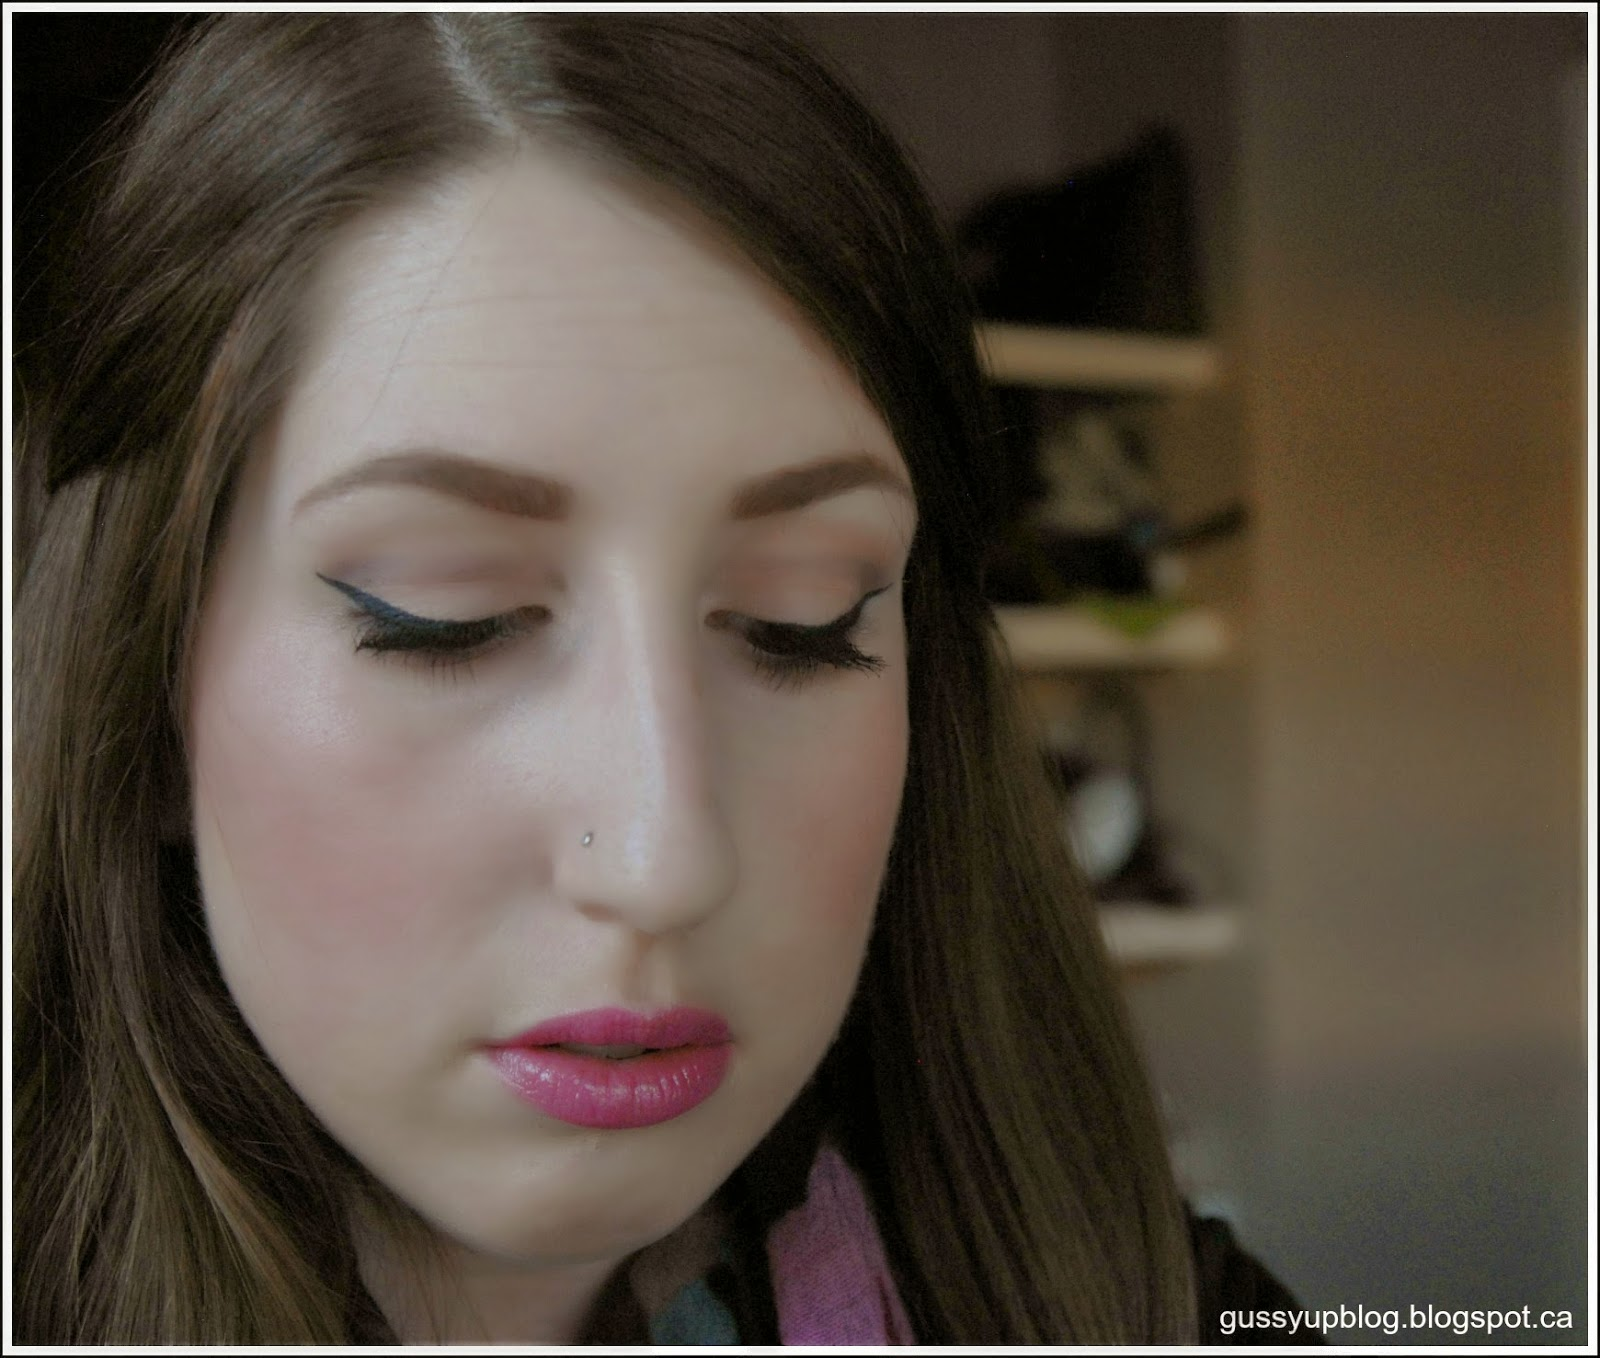 MAC Prep+Prime Highlighter, Radiant Rose, Review and Swatches  Bonus: Spring Makeup Look